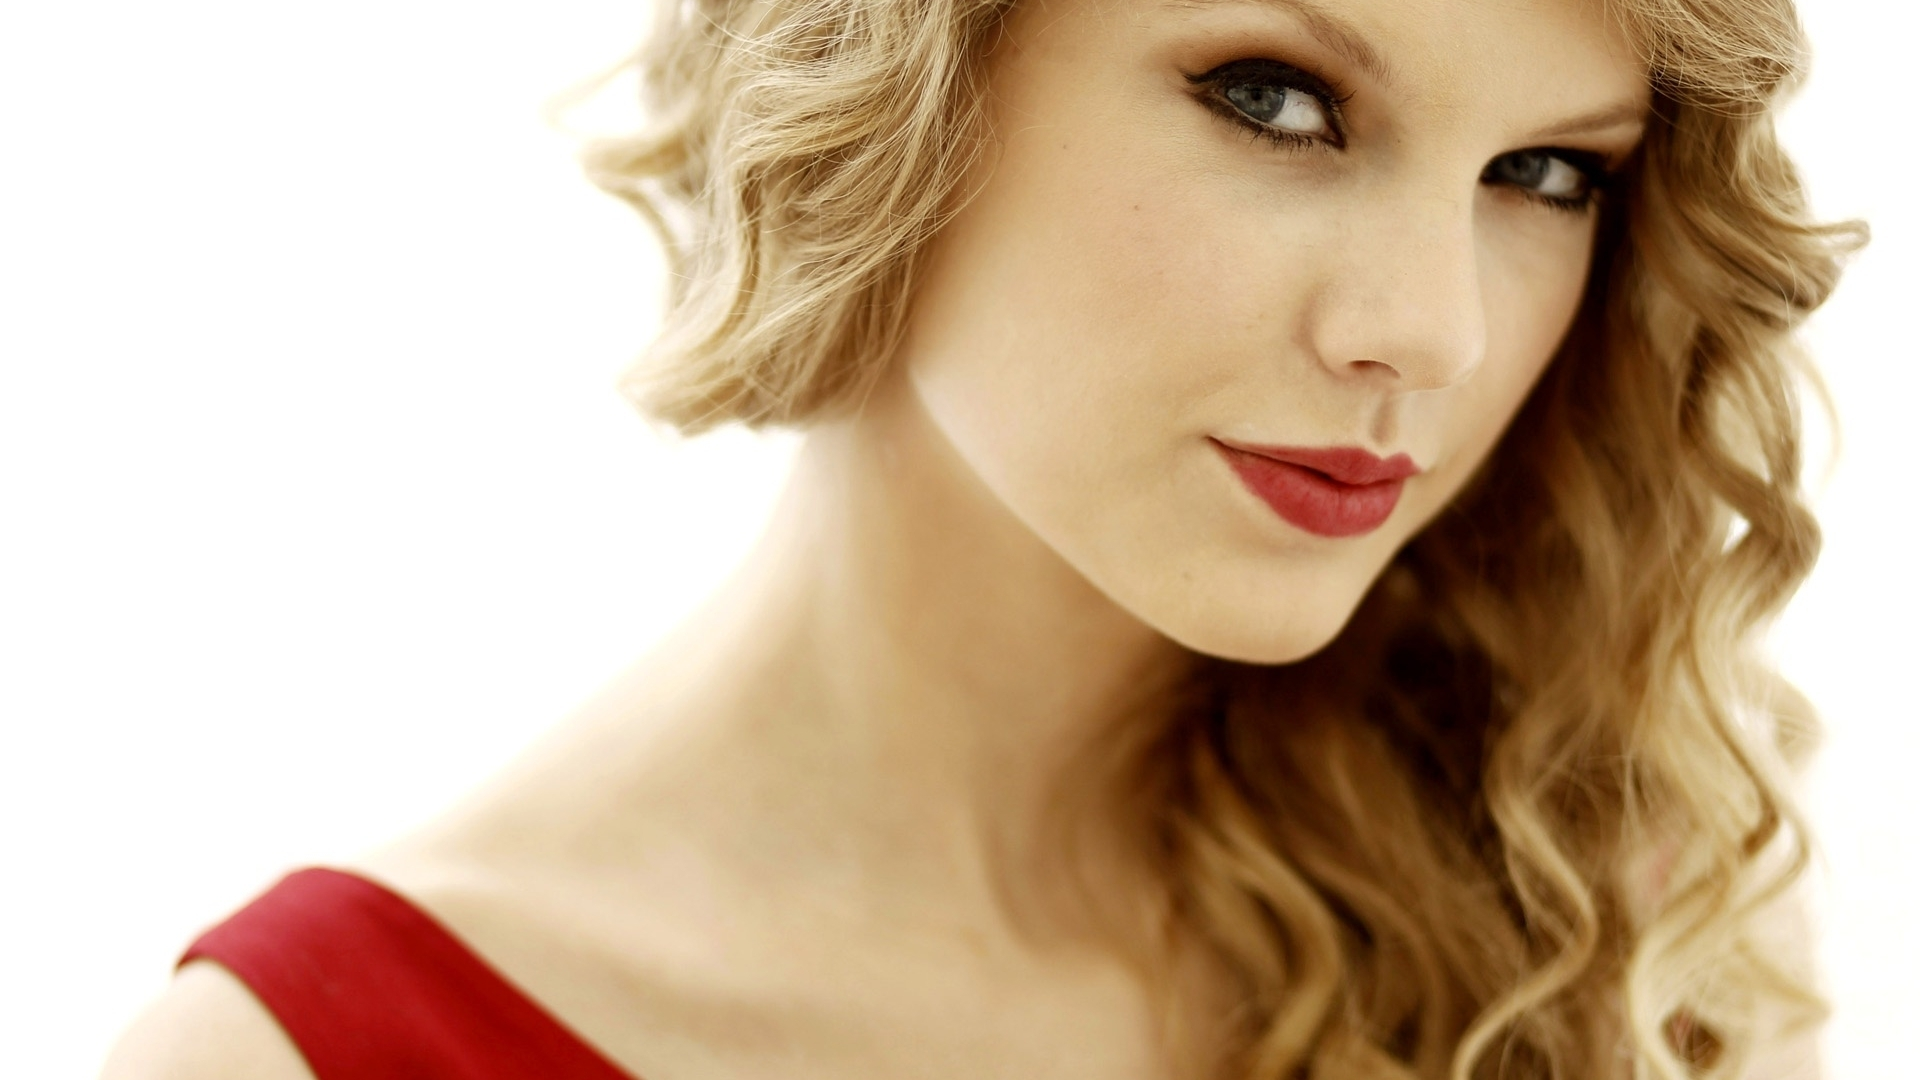 Taylor Swift 1080p Exclusive HD Wallpapers 3500 1920x1080